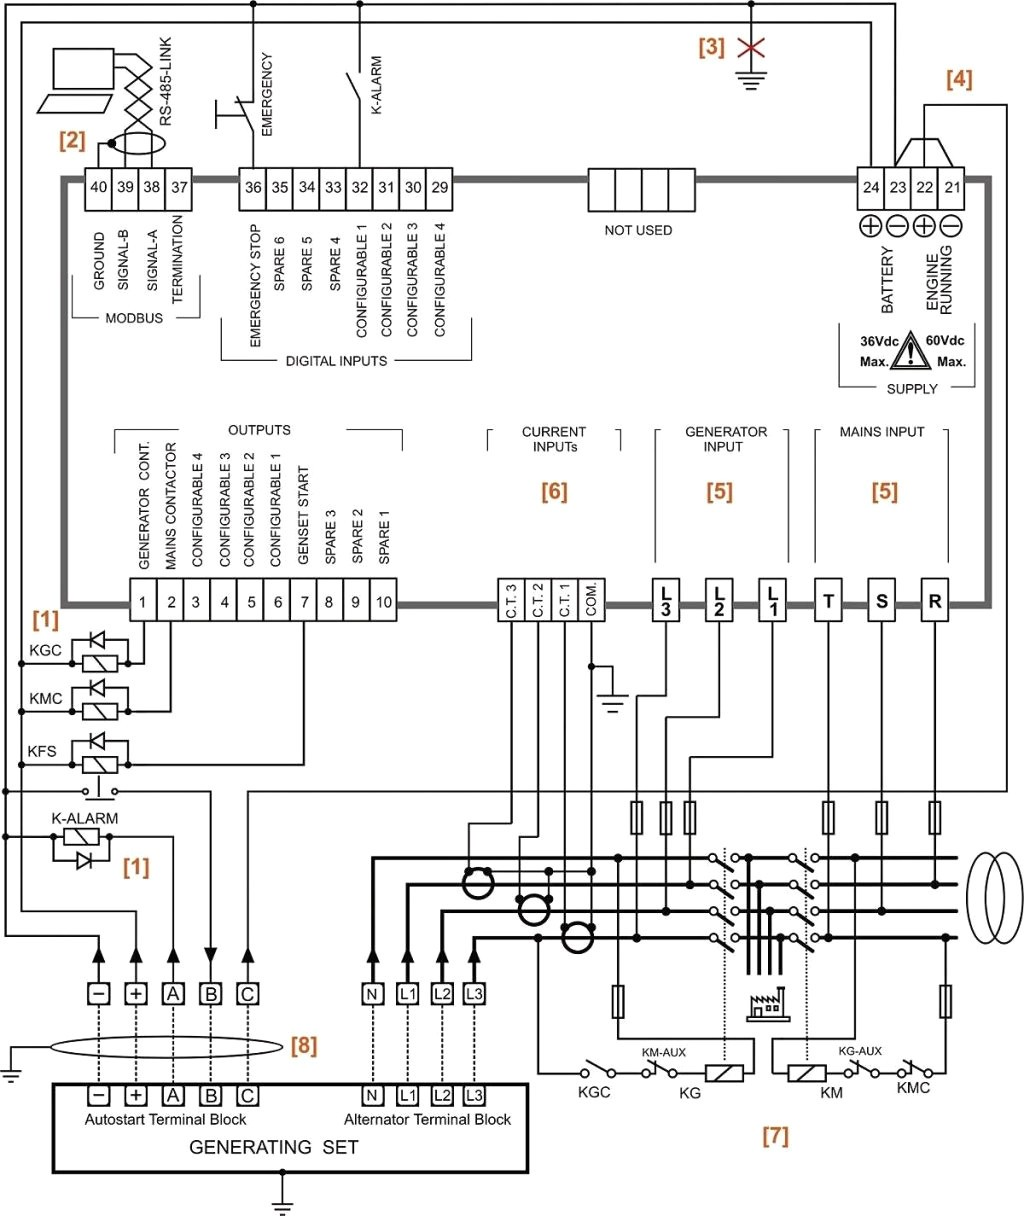 Olympian Generator Wiring Diagram - Somurich.com on control panel parts, control wiring basics, control panel troubleshooting, control panel exhaust, control panel transformer, control panel circuit, assembly diagram, double hung windows parts diagram, control panel guide, control panel generator, duplex pump control panel diagram, control panel cover, control panel electrical, control panel assembly, control panel accessories, control panel power, control panel speedometer, control panel system, control panel flow diagram, control wiring schematics,